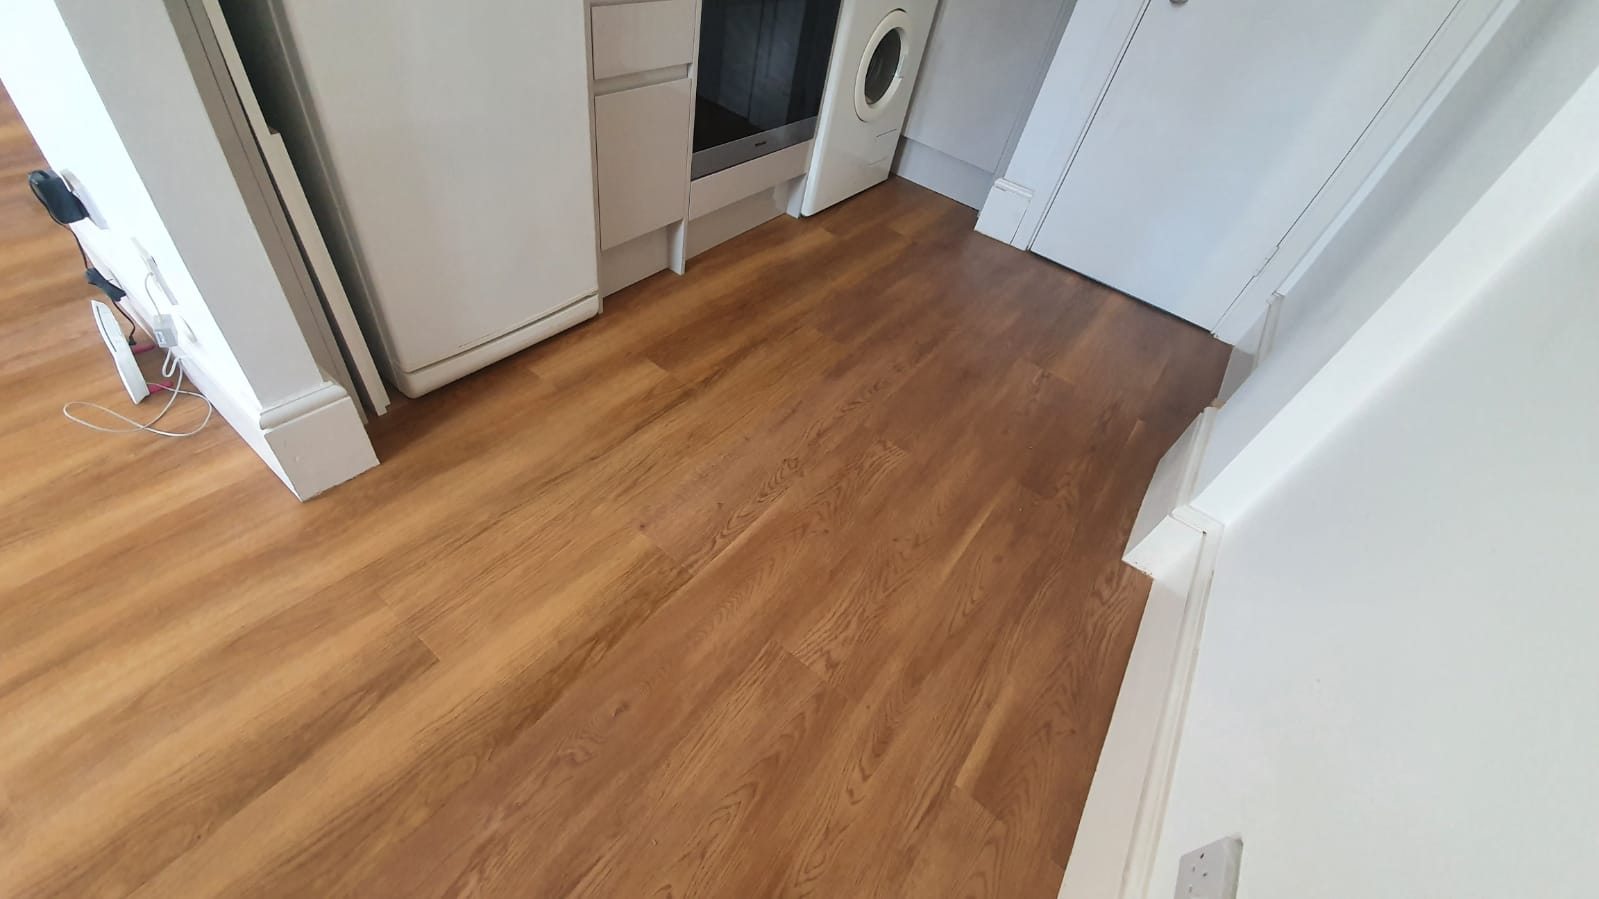 Amtico Spacia New England Oak Vinyl Flooring in Mayfair 1